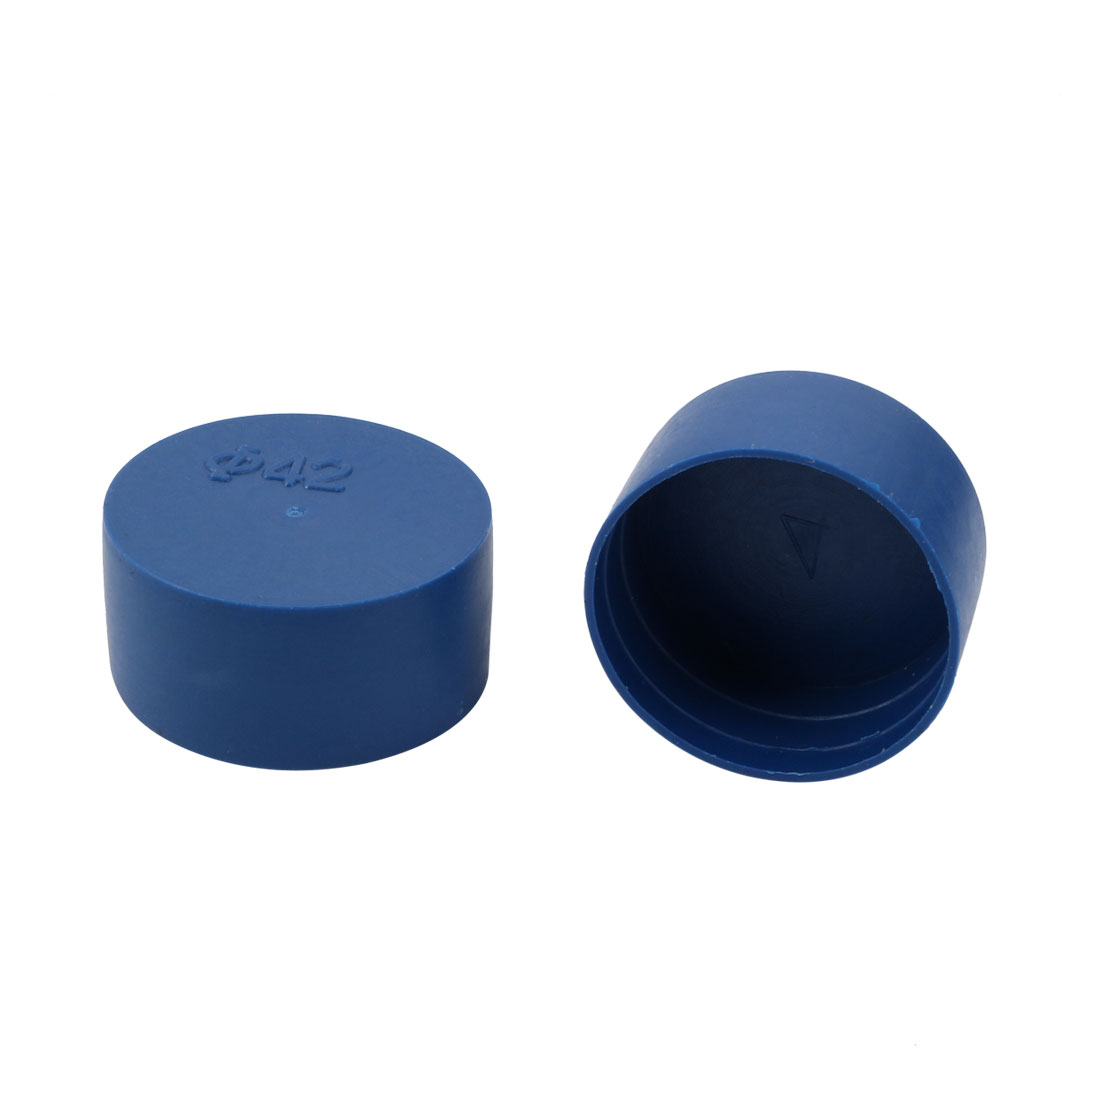 12pcs 42mm Inner Dia PE Plastic End Cap Bolt Thread Protector Tube Cover Blue